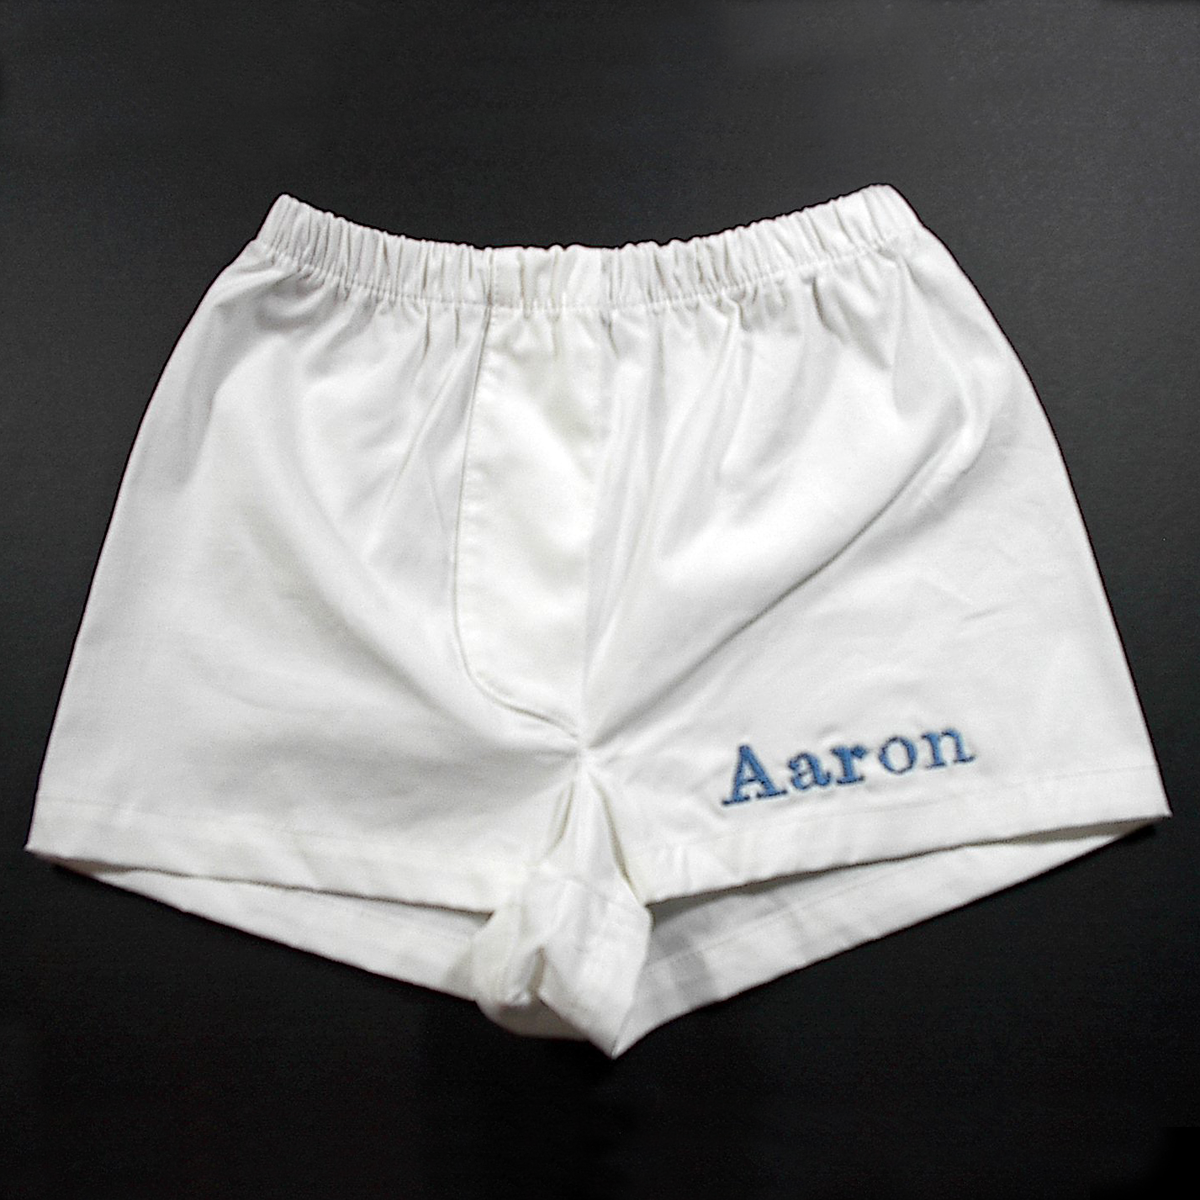 Shop for Baby Underwear & Undershirts in Baby Clothing Items.